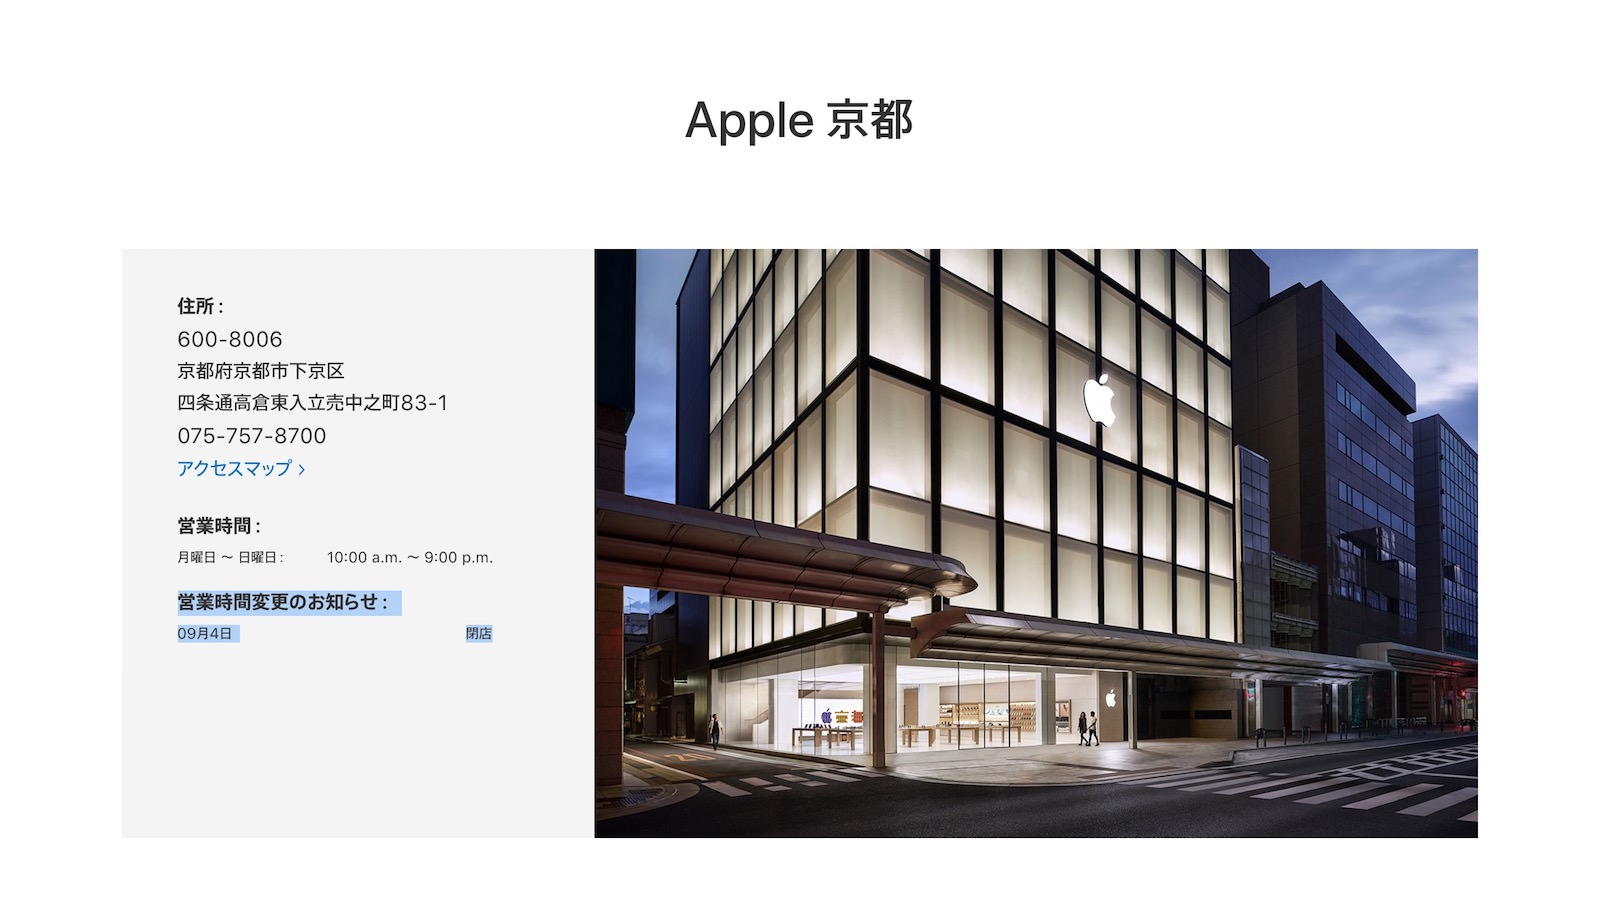 Apple Store Closed for Typhoon